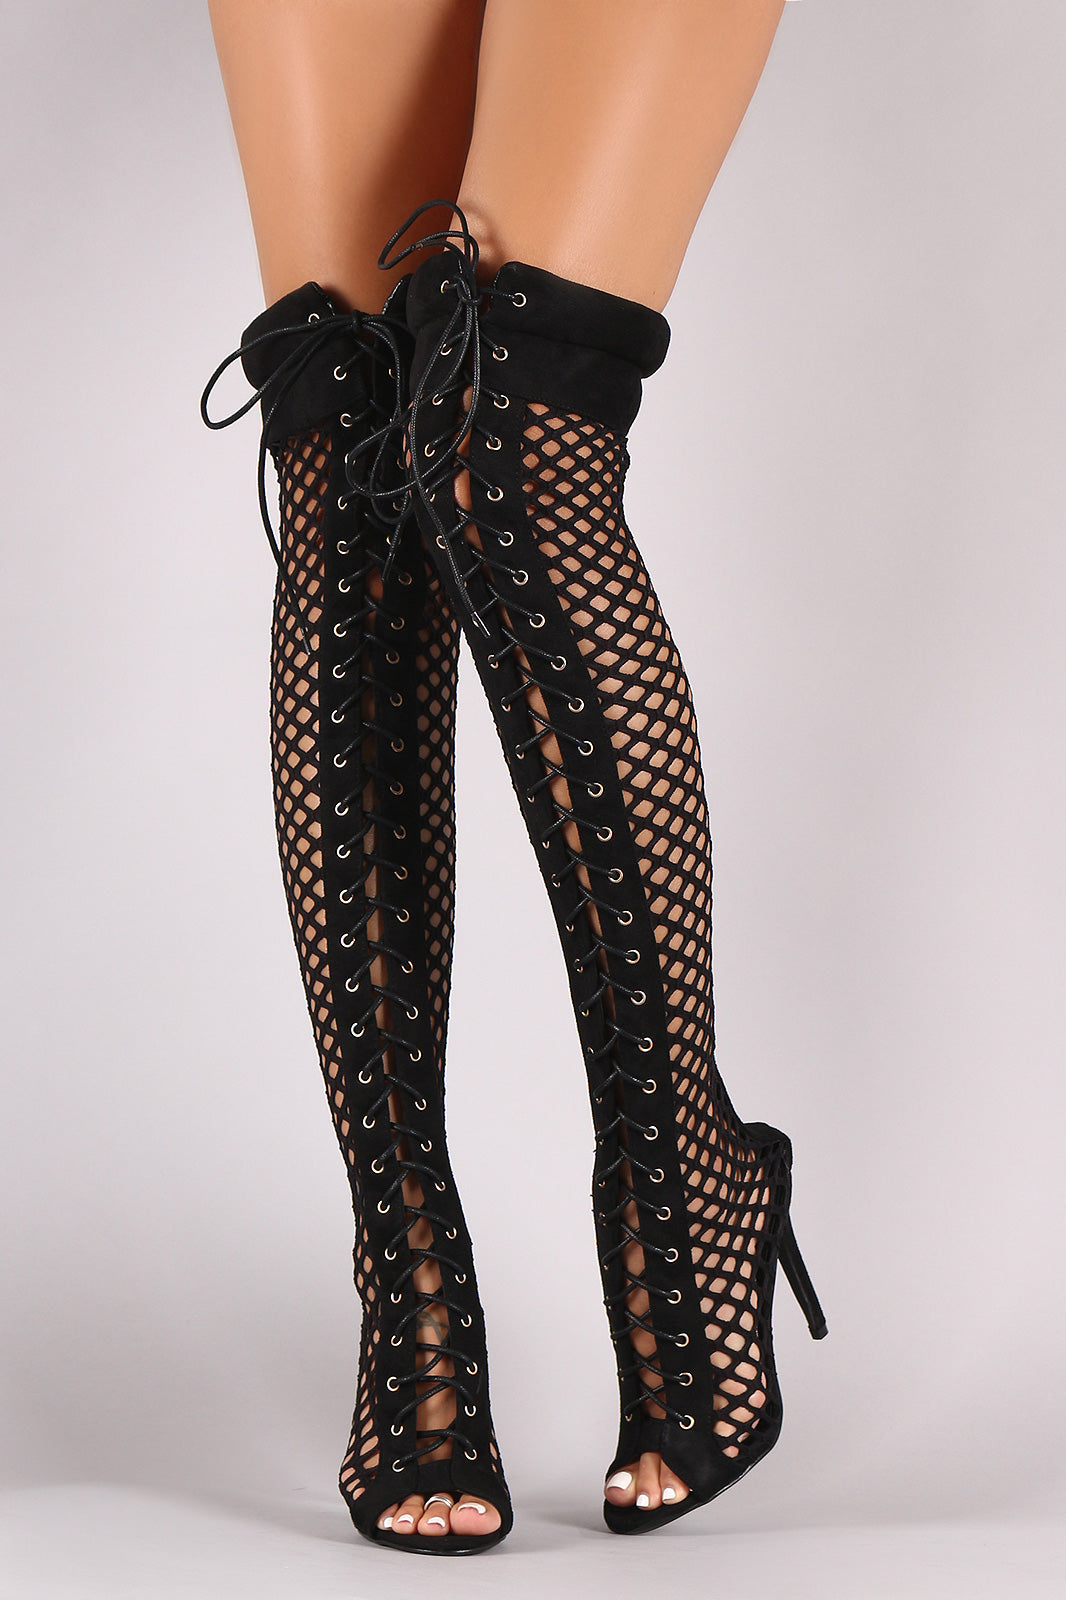 Suede Fishnet Lace Up Stiletto Heeled Over-The-Knee Boots